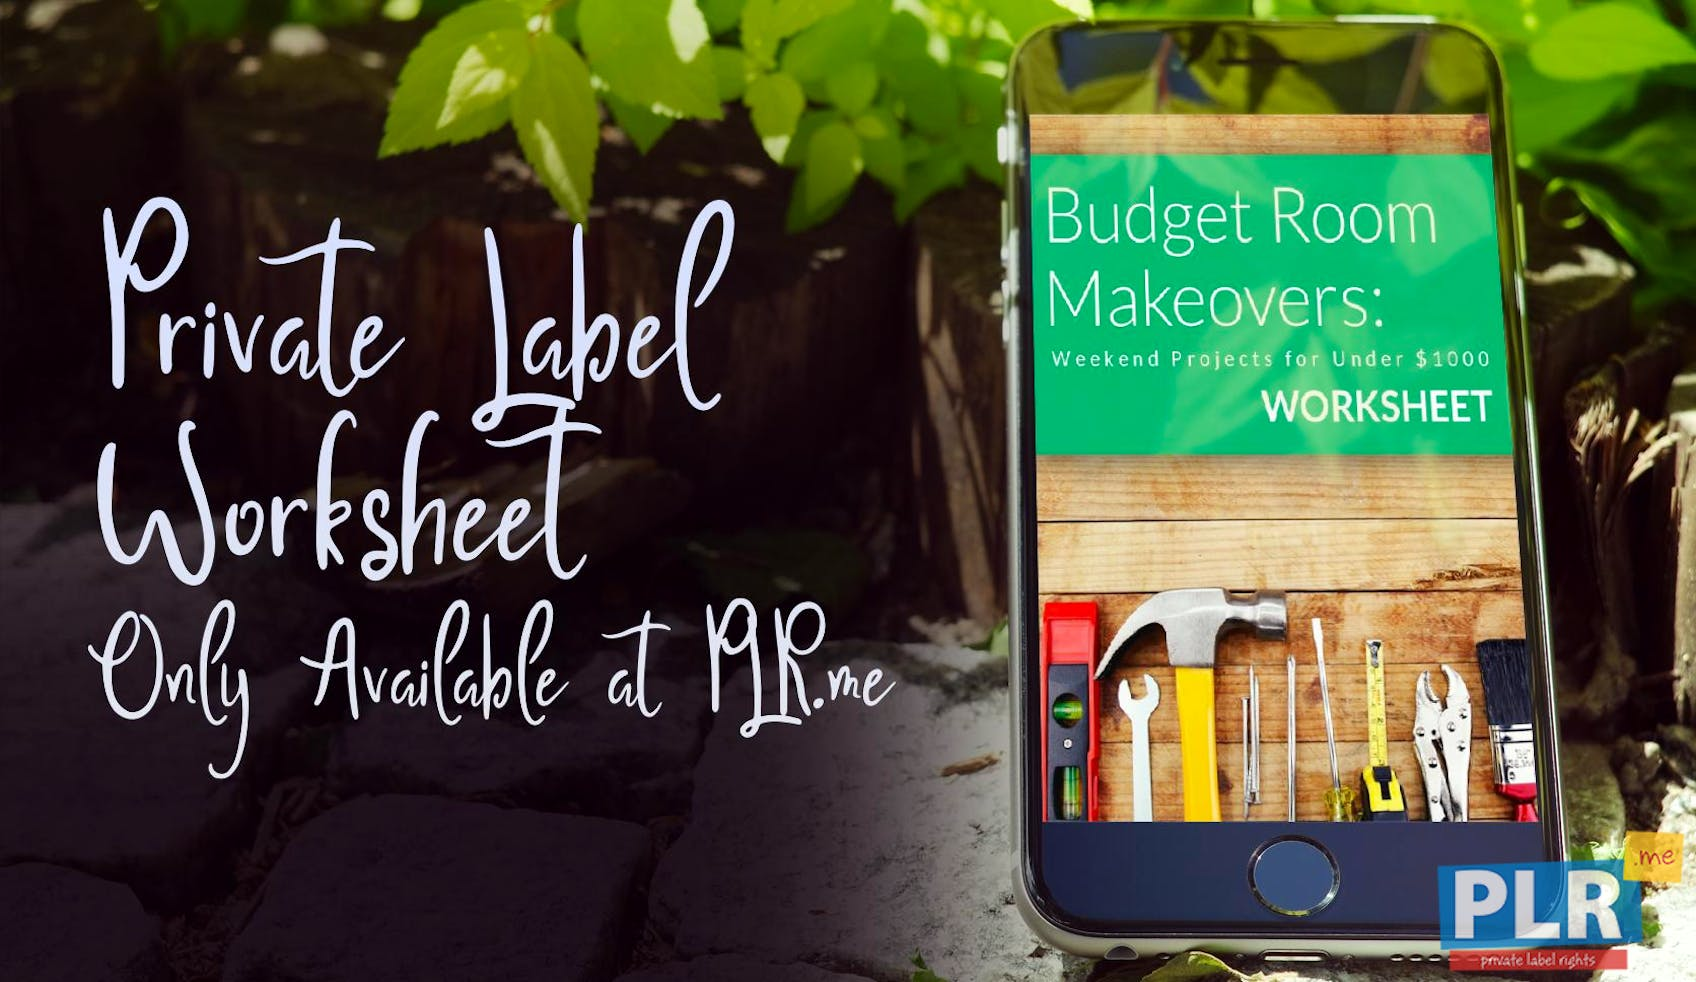 Budget Room Makeovers Weekend Projects For Under $1000 Worksheet